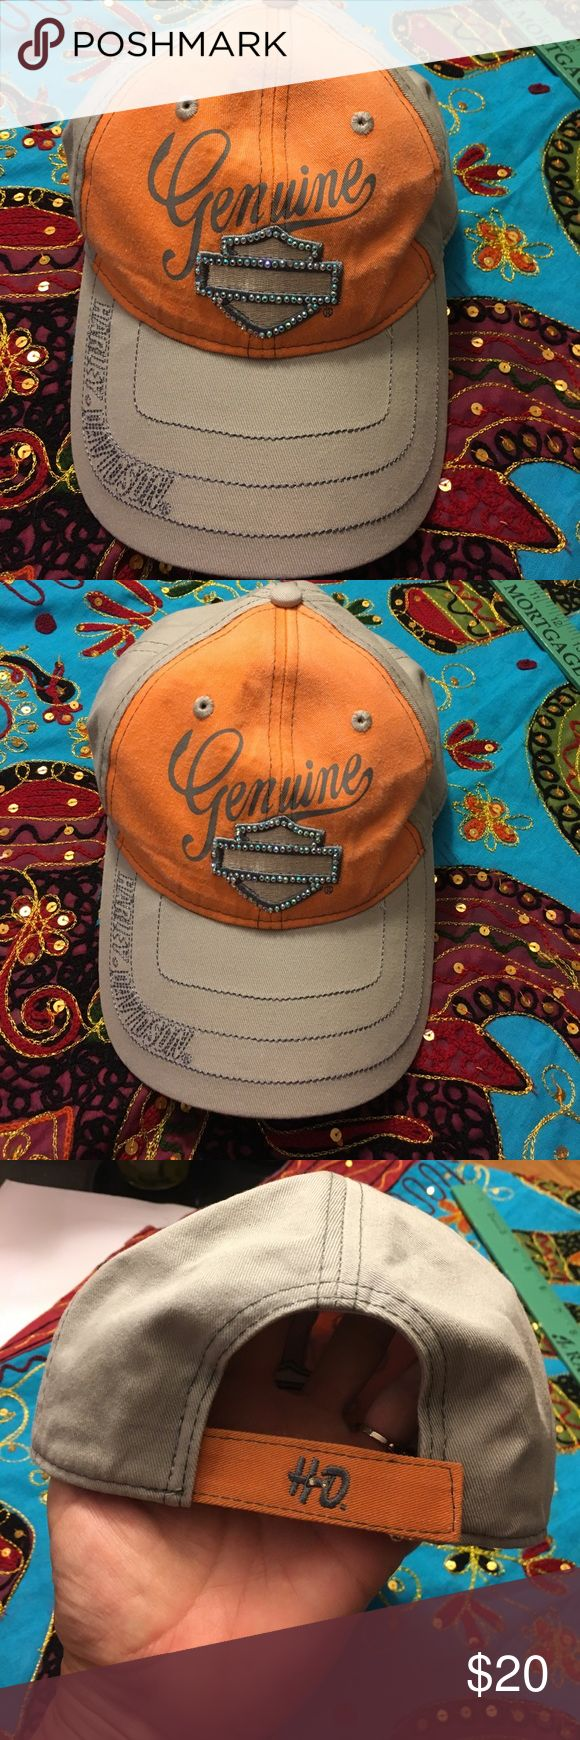 Harley Davidson Hat. New. Gray and orange ladies hat by Harley Davidson. Pretty crystal blinged bar & shield. Adjustable strap in back. New no tags. Has NOT been worn. Harley-Davidson Accessories Hats